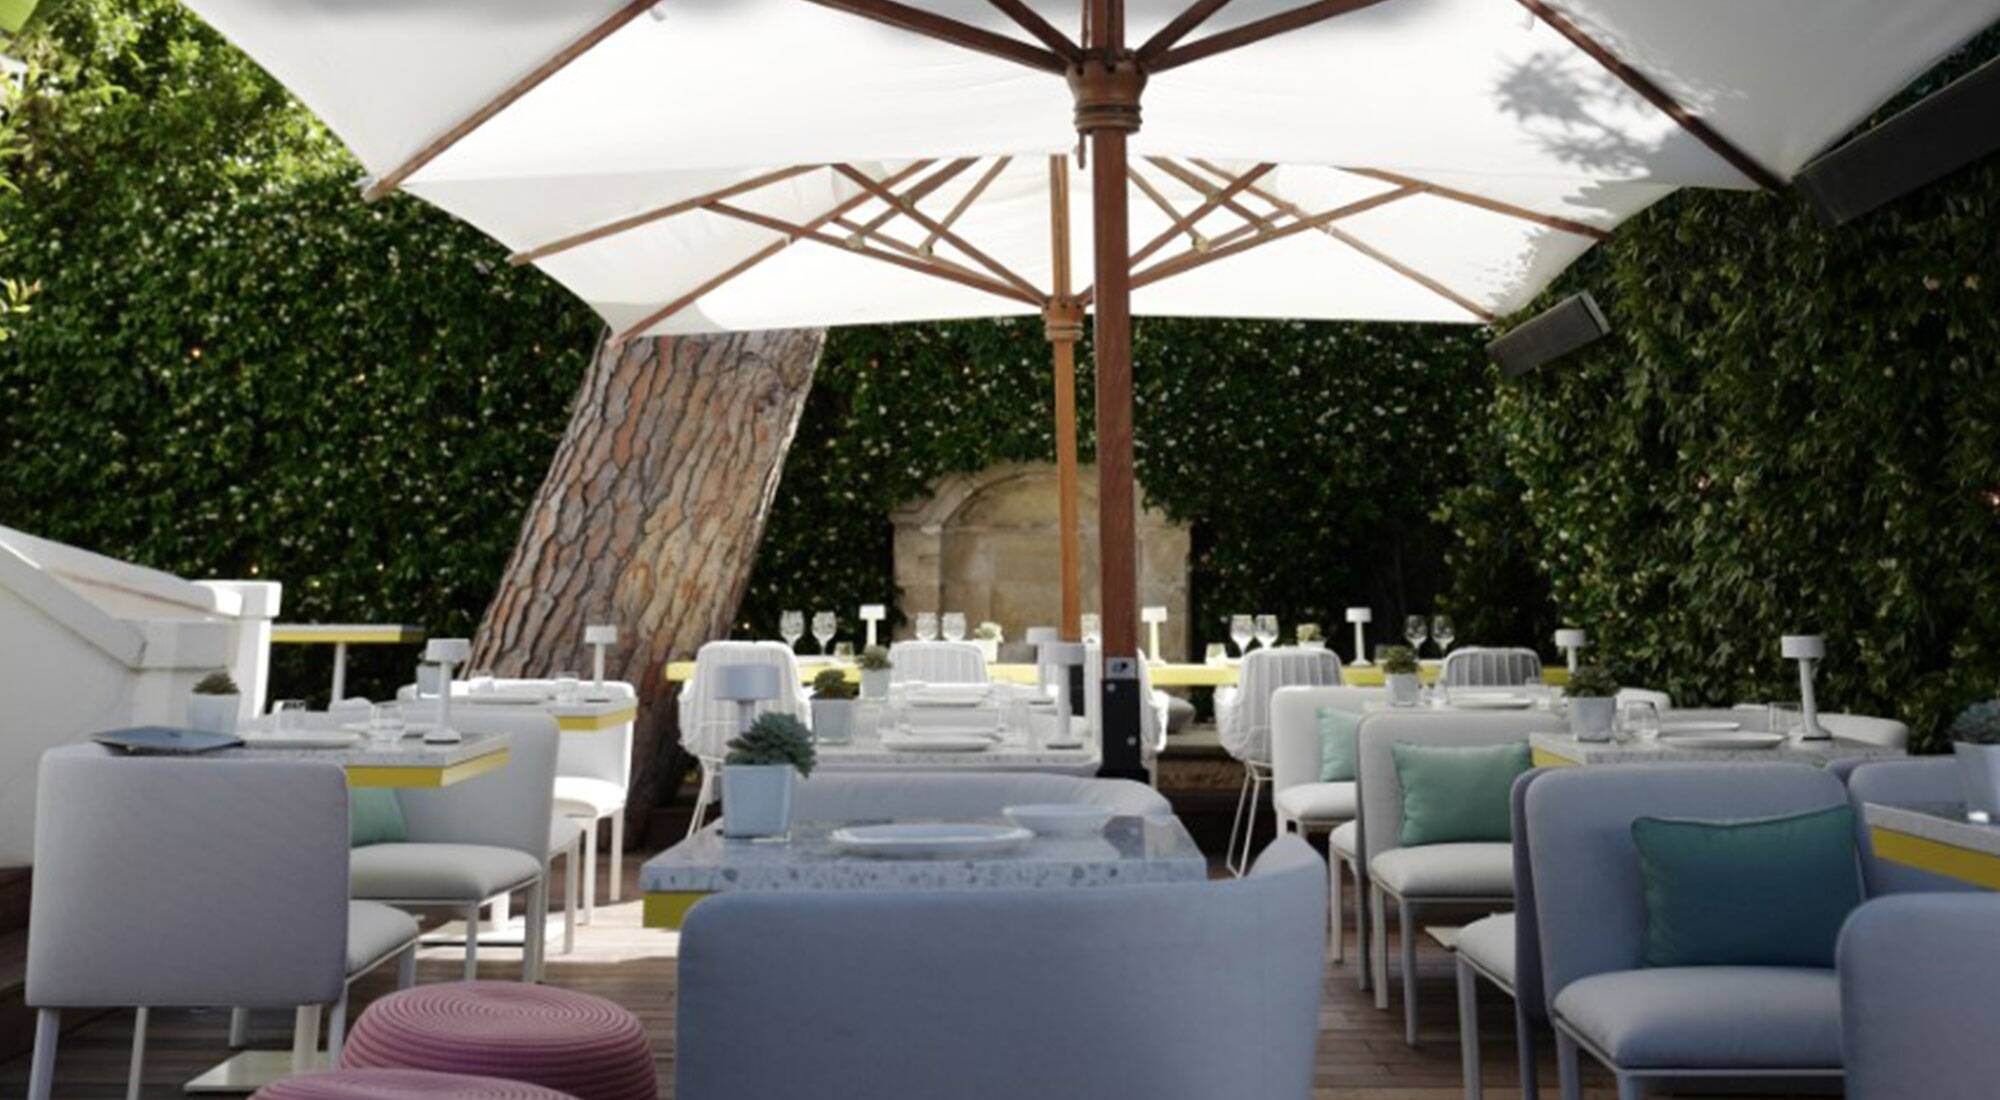 Le White 1921 In Saint Tropez Operated By Lvmh Hotel Management Hosts Toshare A New Cafe Restaurant Concept By Chef Jean Imbert And Pharrell Williams Lvmh